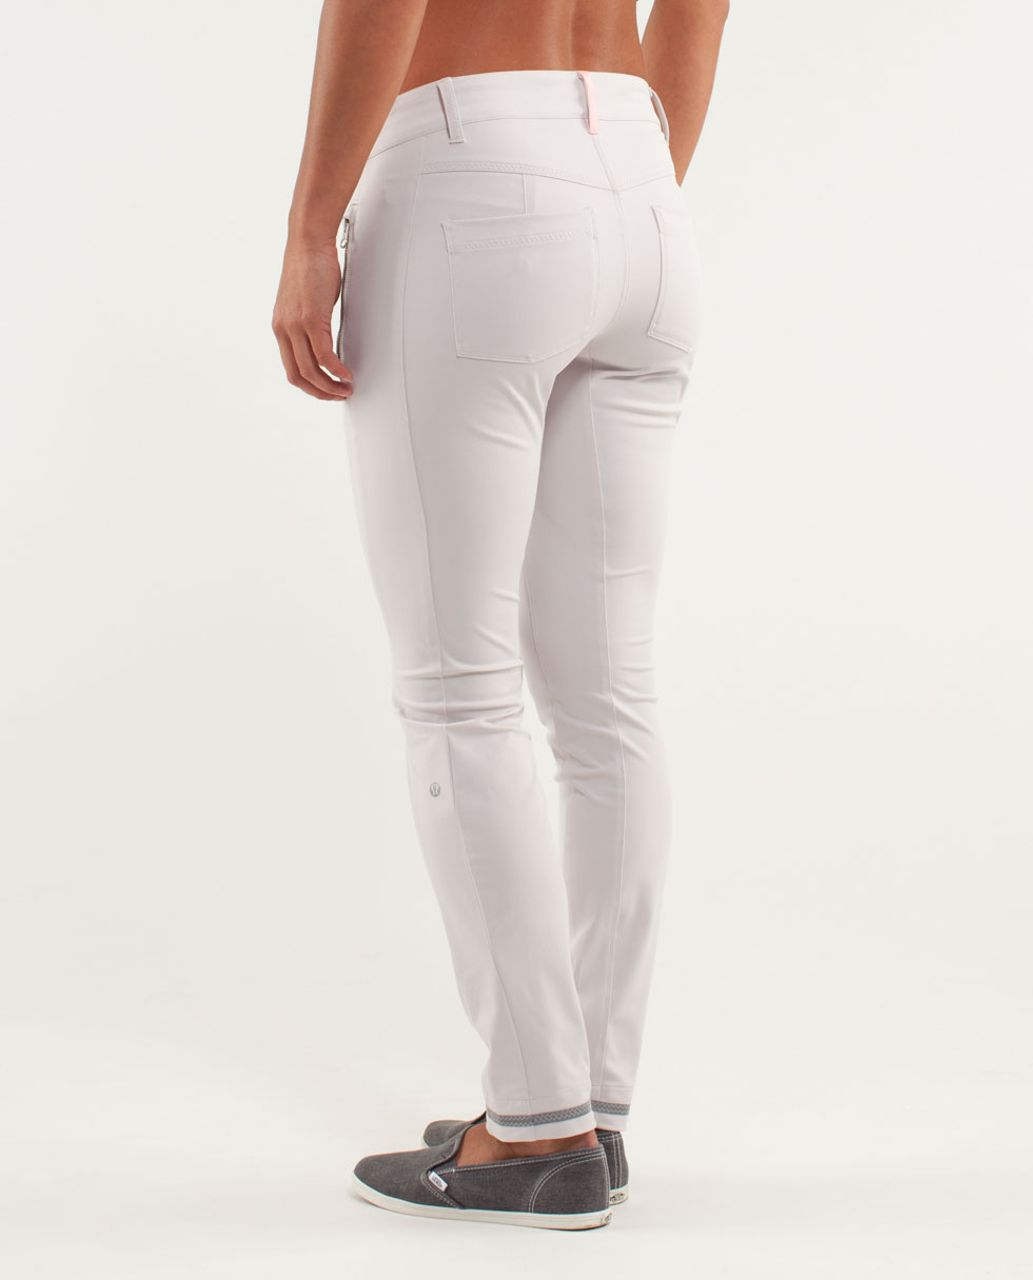 Lululemon Out & About Pant - Dune